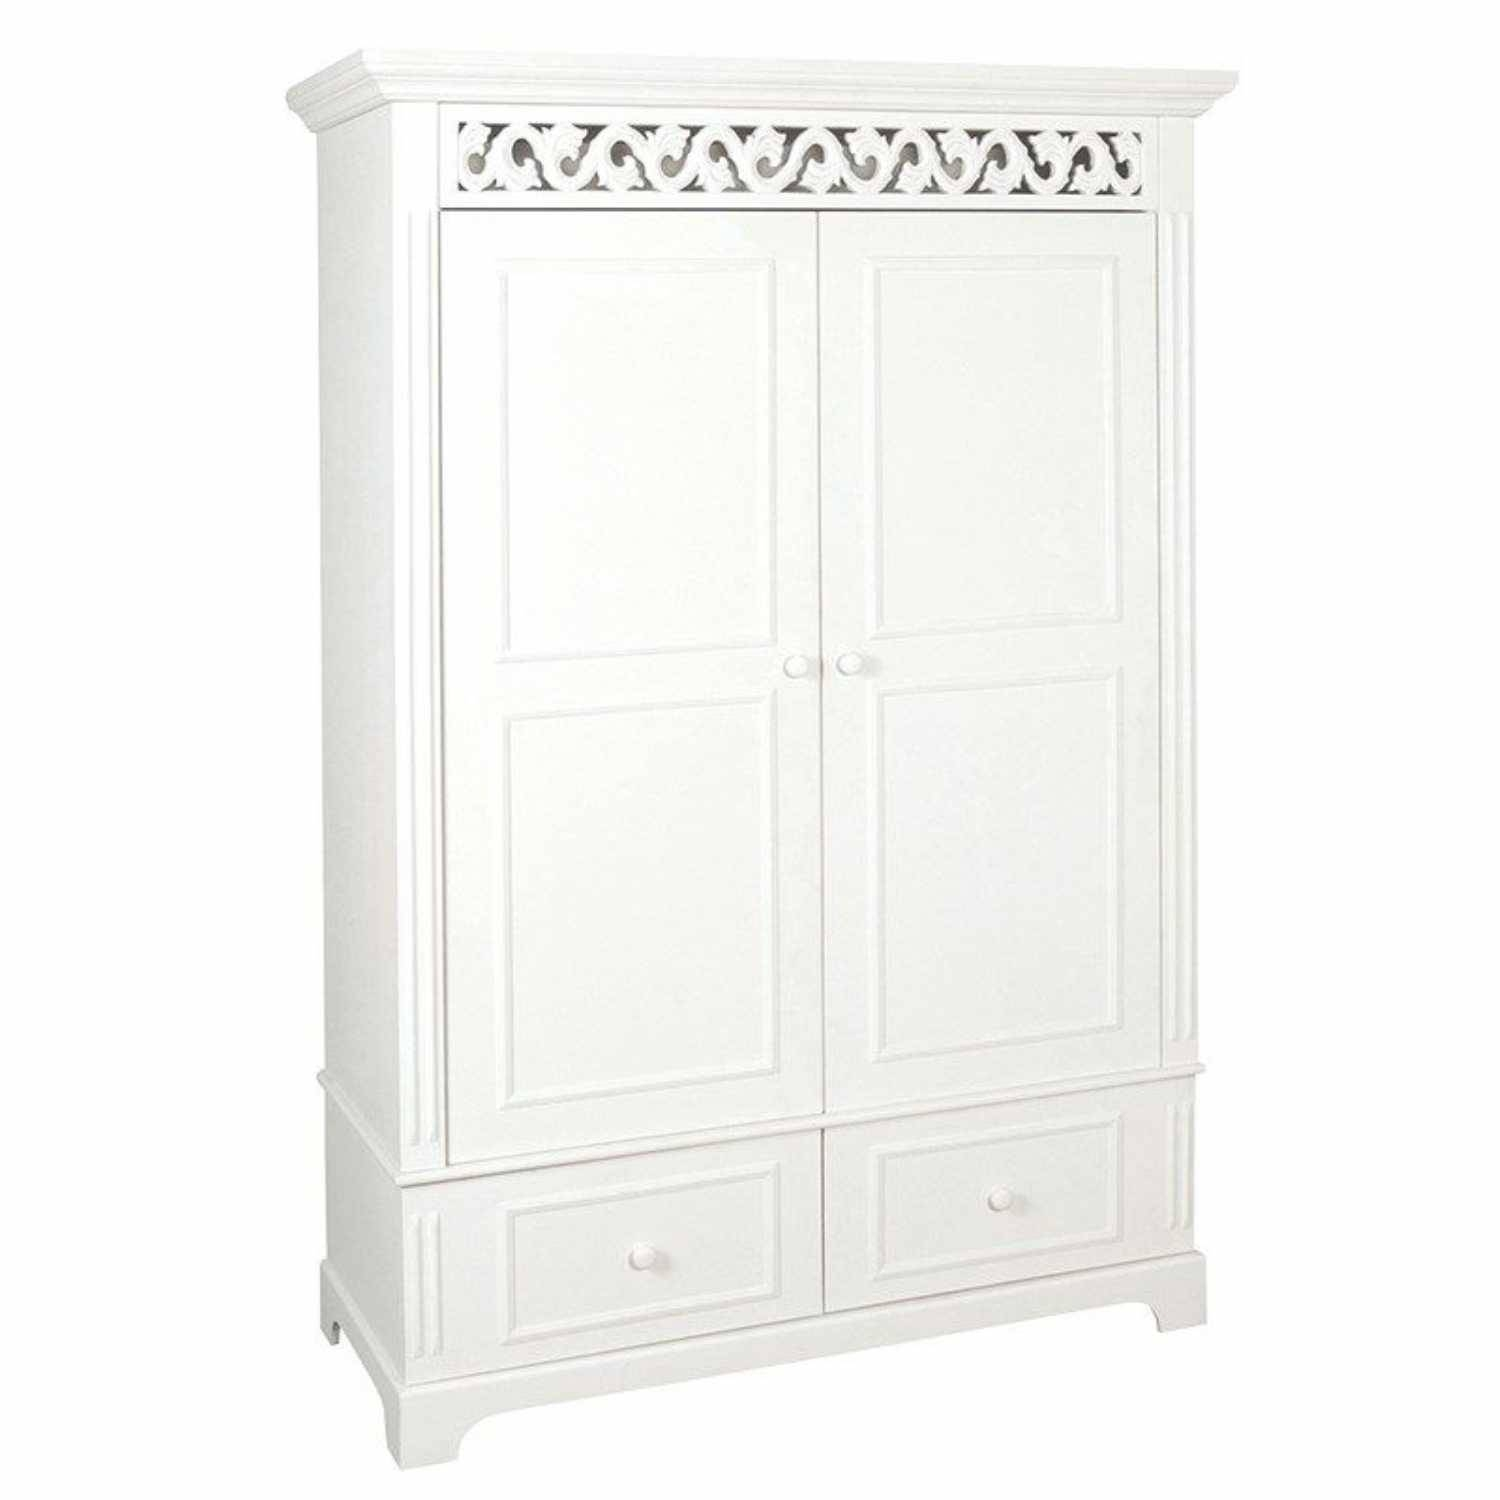 White Painted Shabby Chic Belgravia Large Double 2 Drawer Wardrobe with Large Shabby Chic Wardrobes (Image 15 of 15)